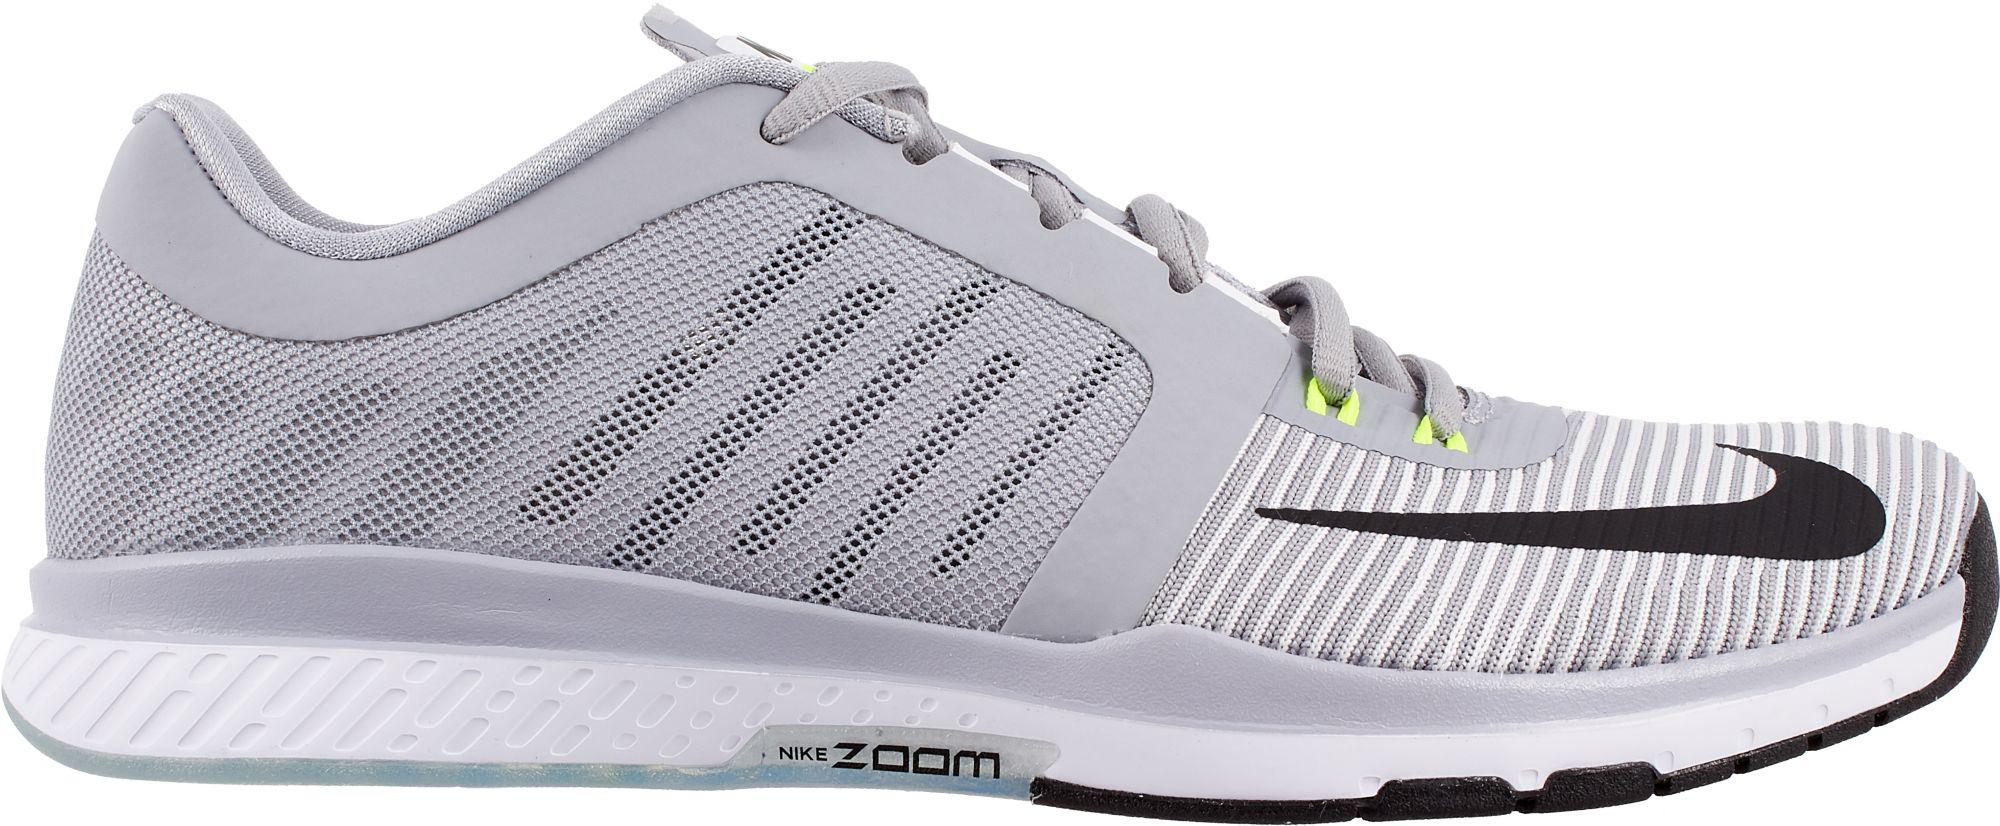 82077d4c97ad Lyst - Nike Zoom Speed Tr 3 Training Shoes in Gray for Men